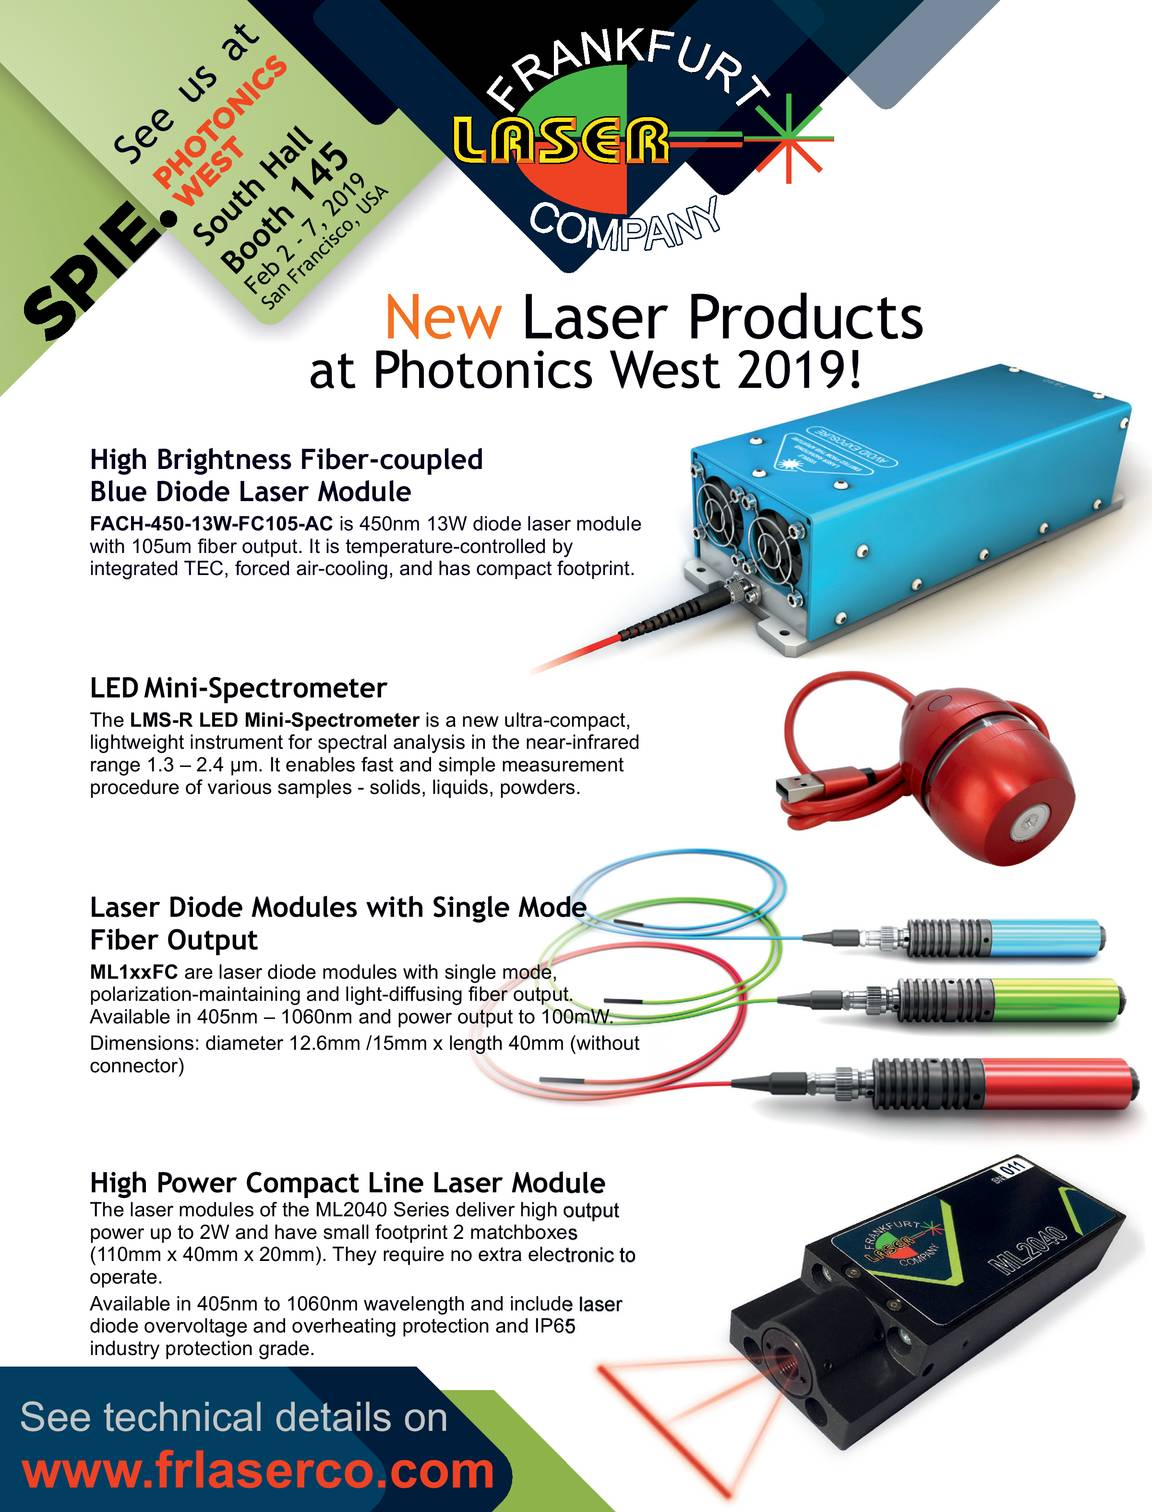 Laser Focus World - January 2019 - page 67